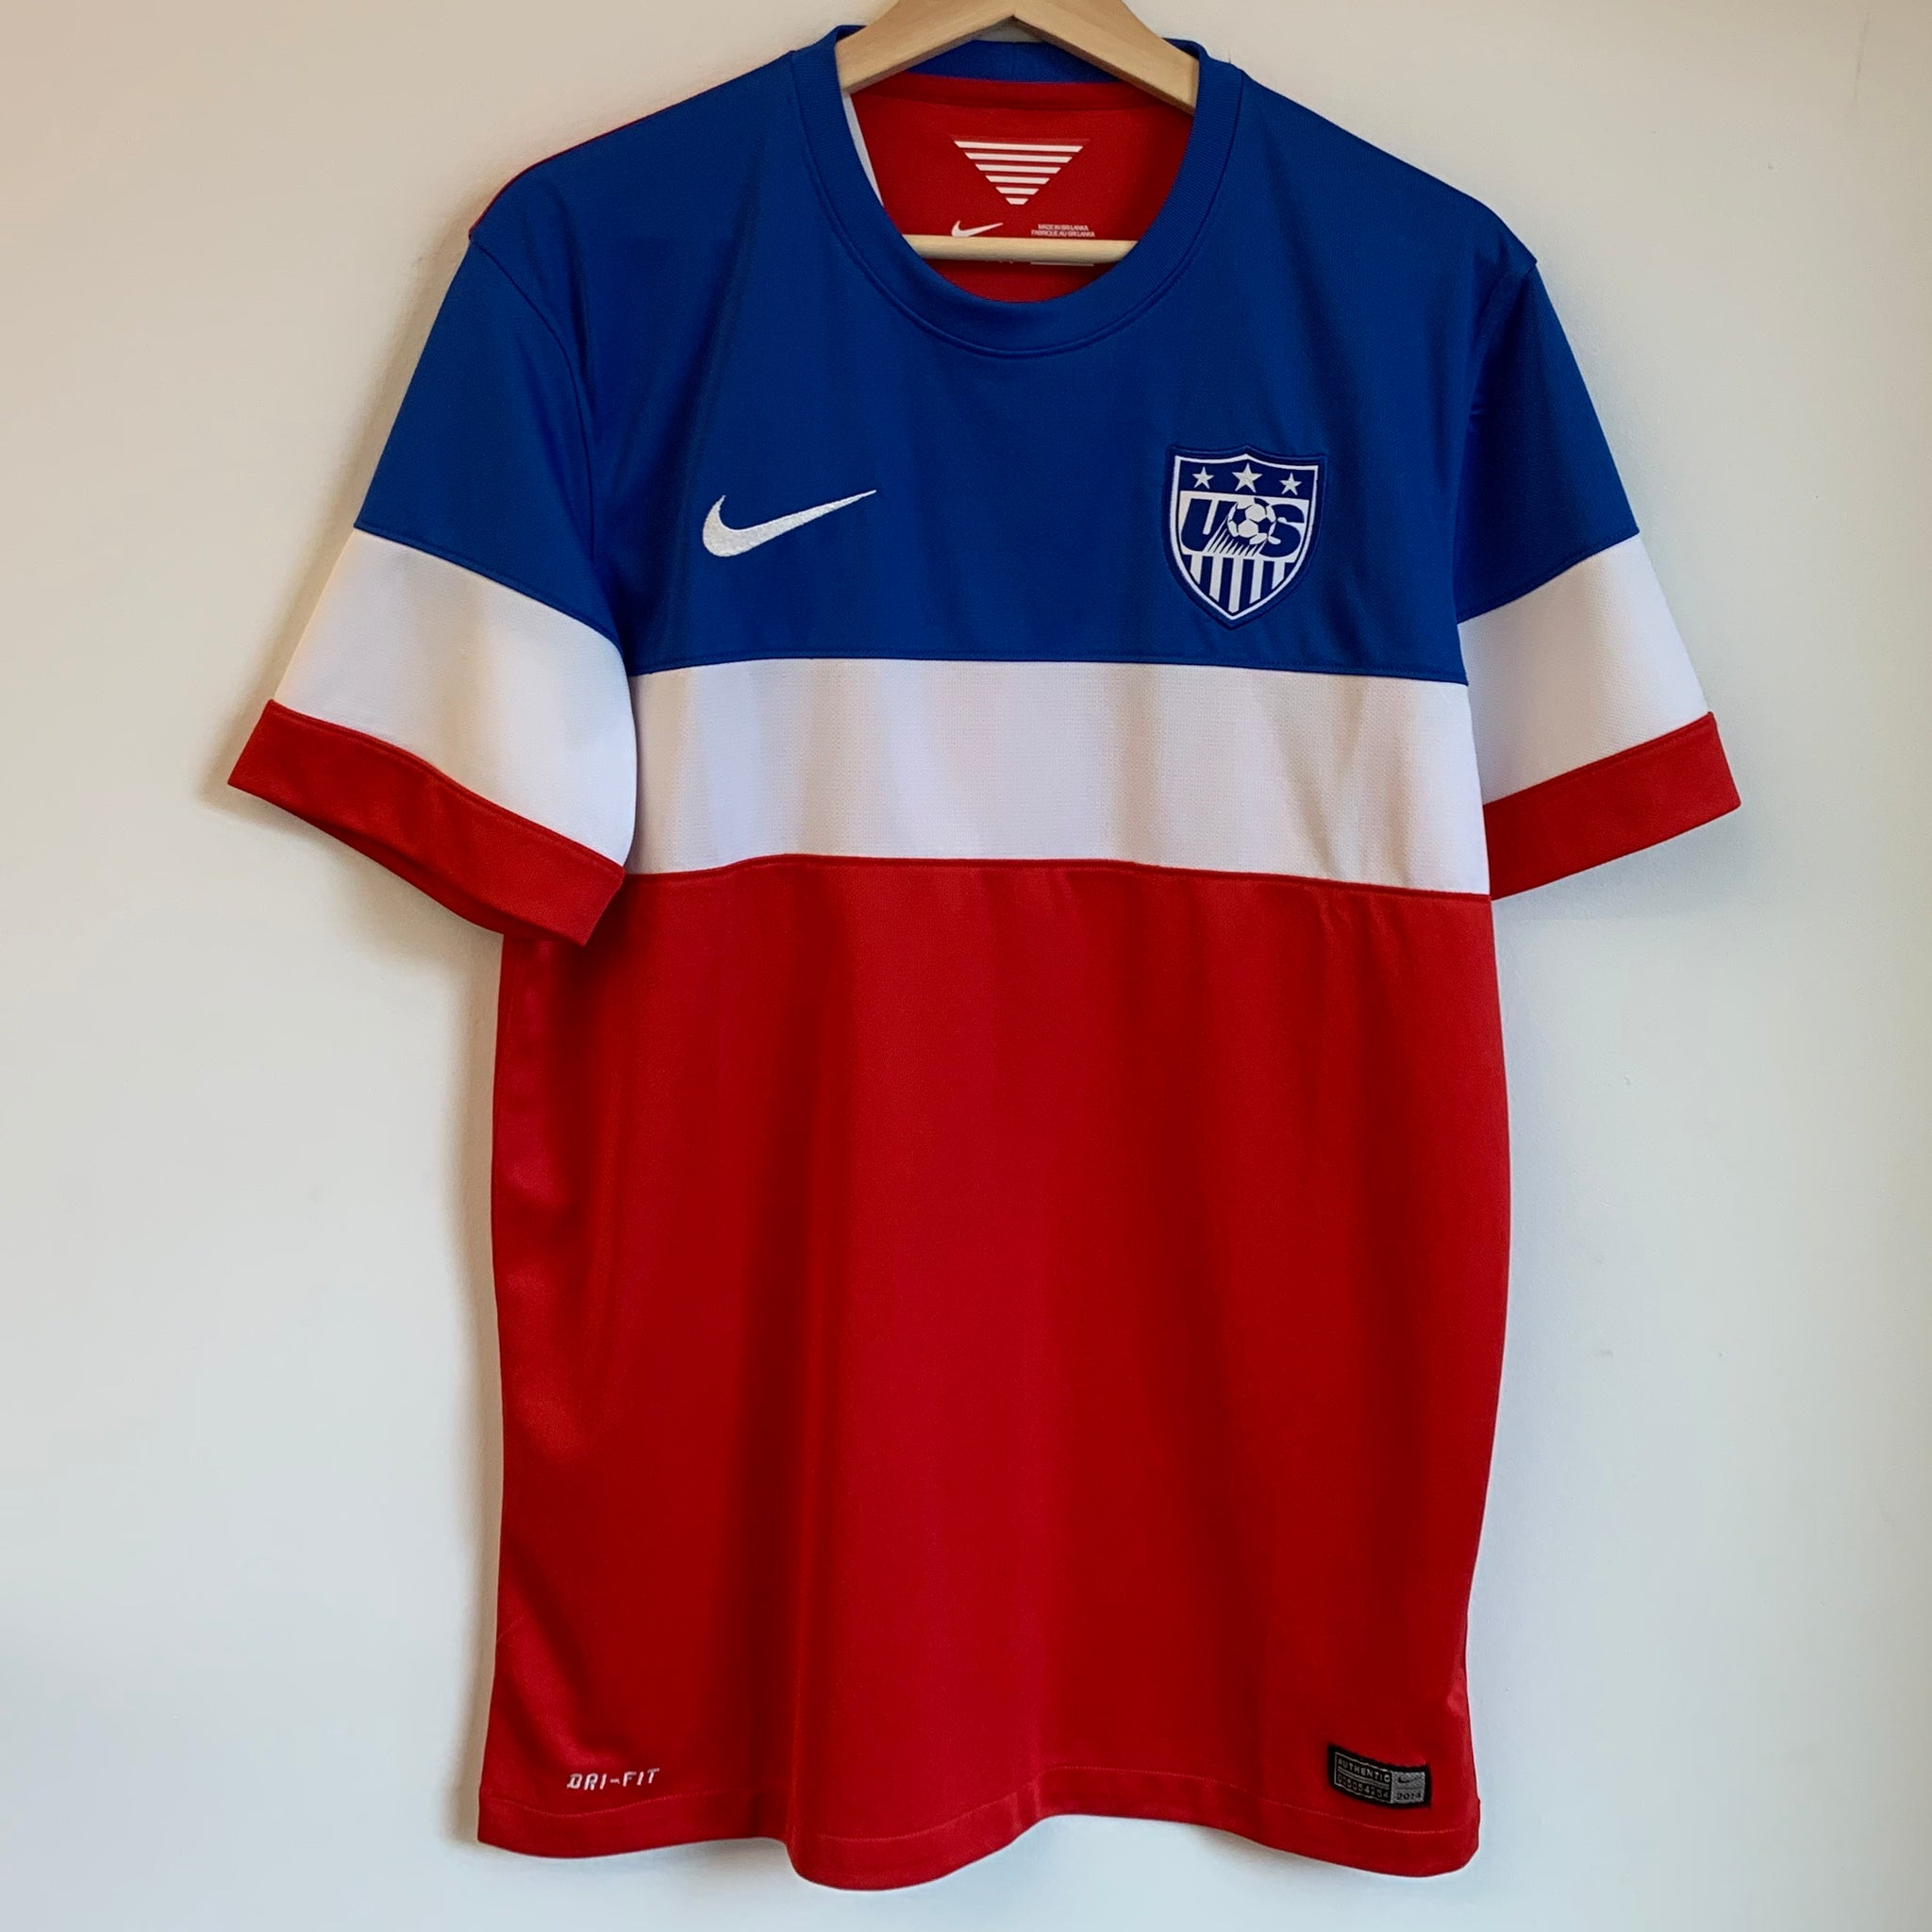 Nike USA Red/White/Blue Jersey